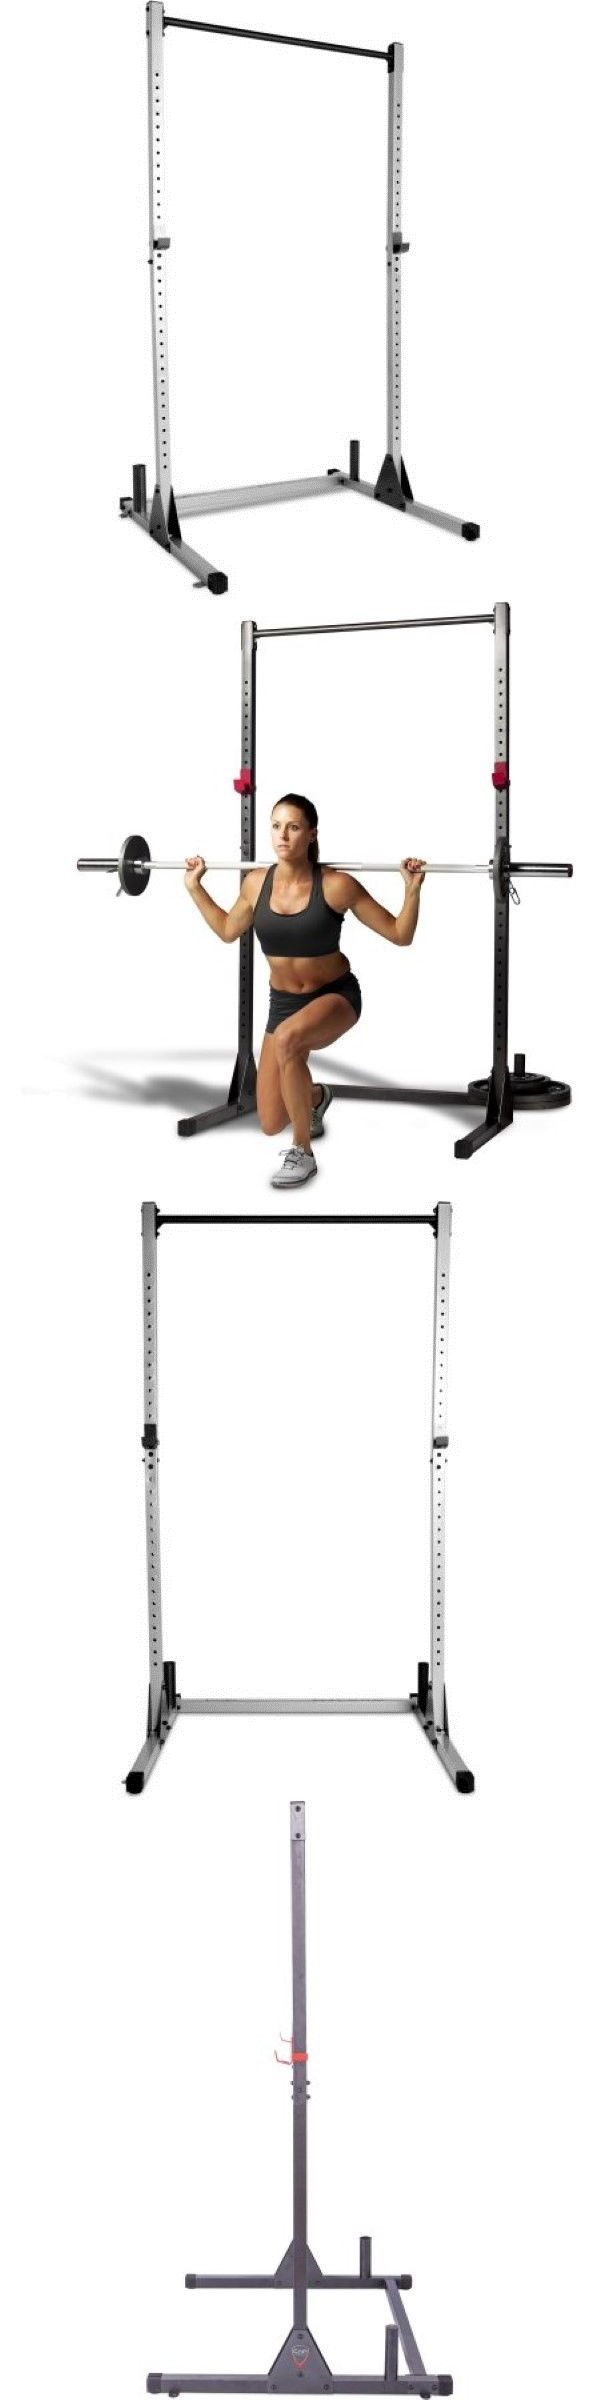 Power Racks and Smith Machines 179815: Strength Power Rack Pull Up Fitness Exercise Weight Lifting Squat Deadlifts -> BUY IT NOW ONLY: $109.99 on eBay!